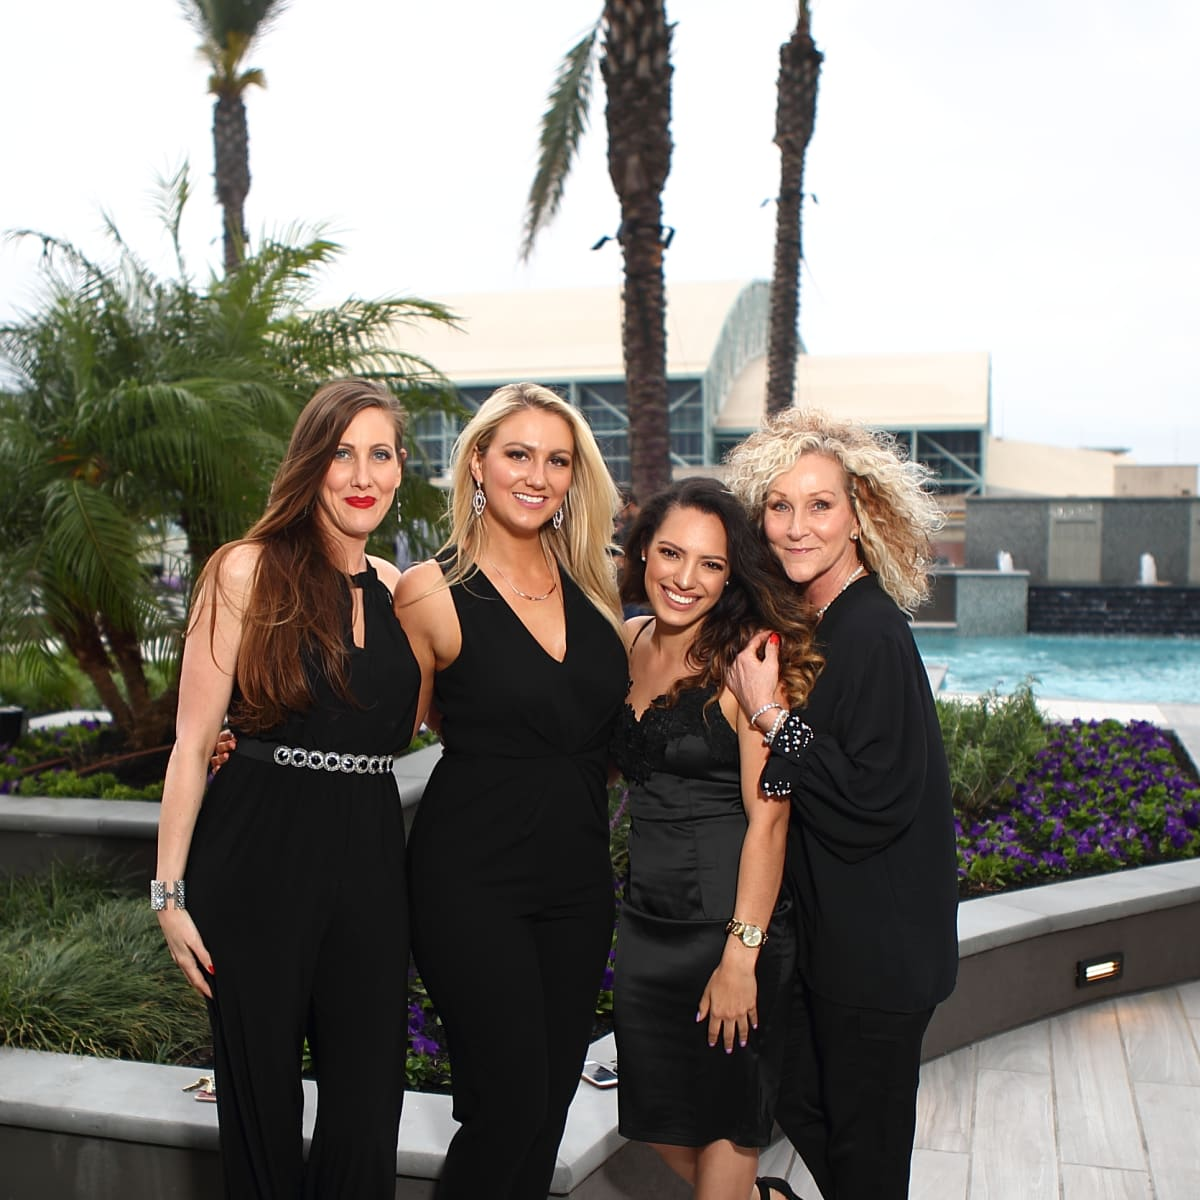 houstonians elevate the party at debut of dynamic downtown high-rise